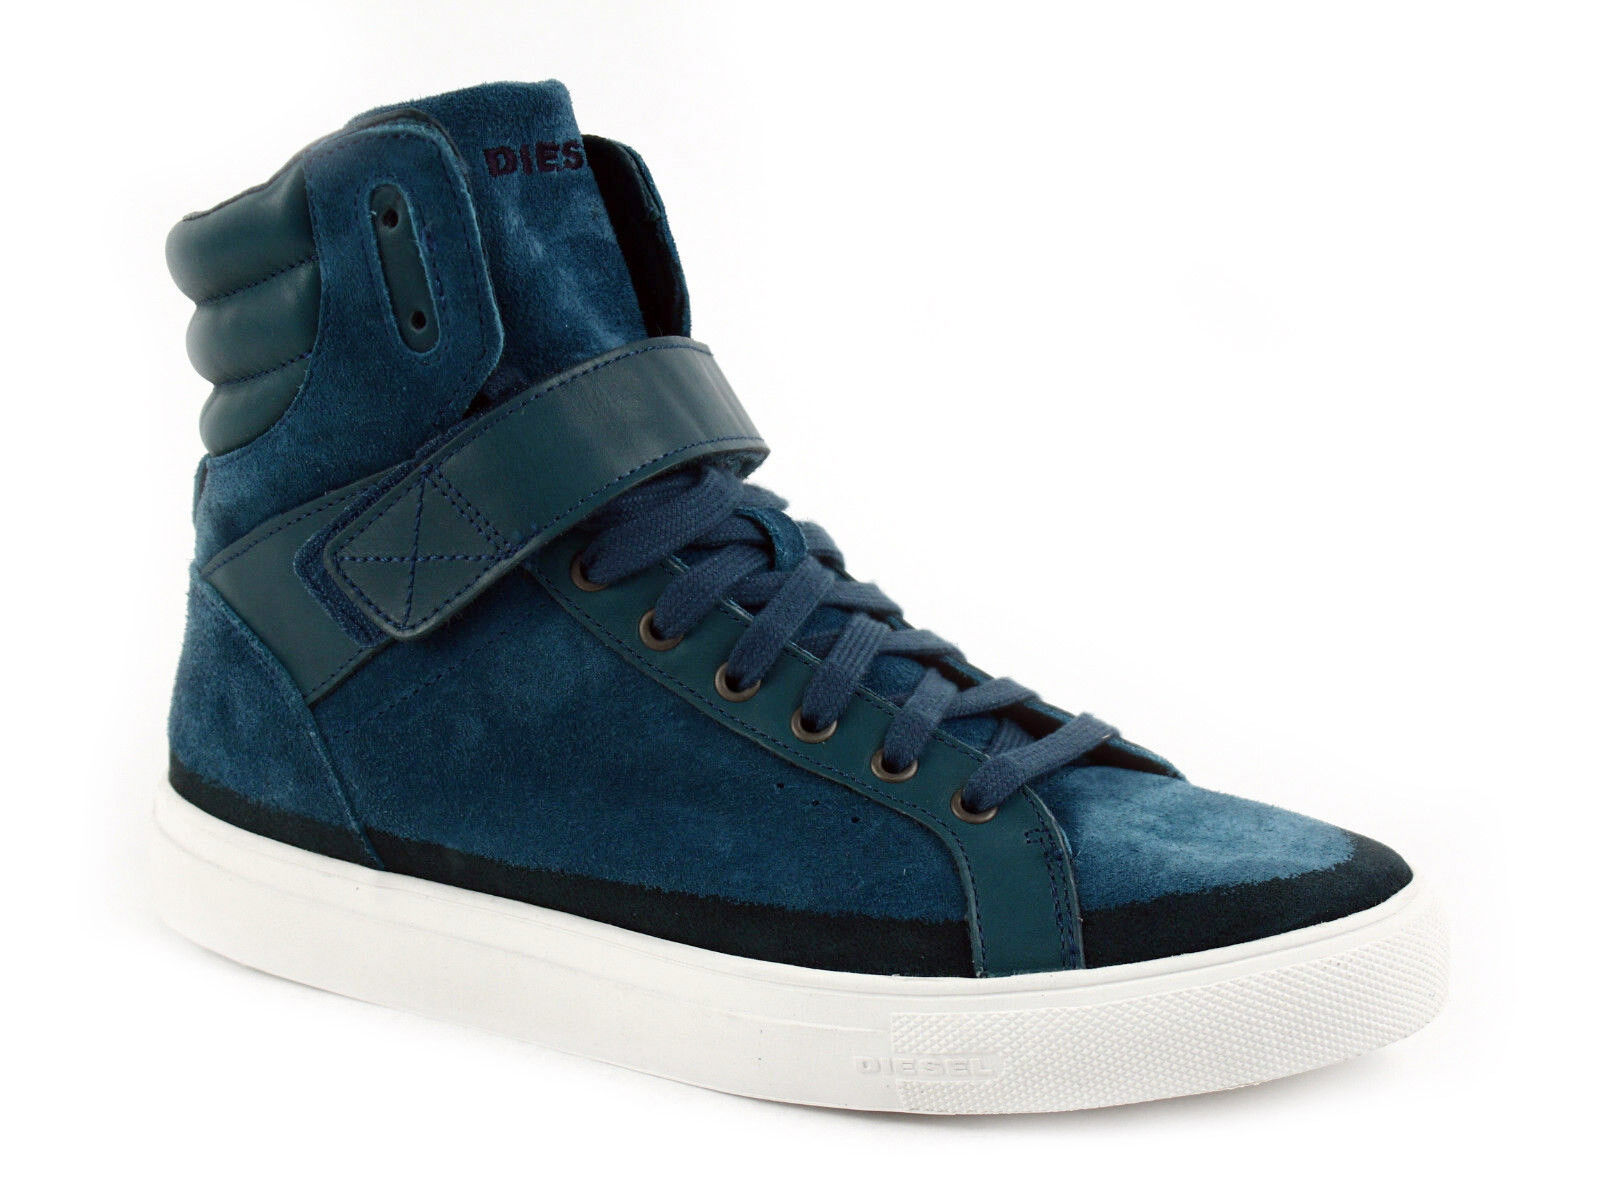 Diesel ECLIPSE High Top Mens Casual Fashion bluee Leather Suede shoes Sneaker